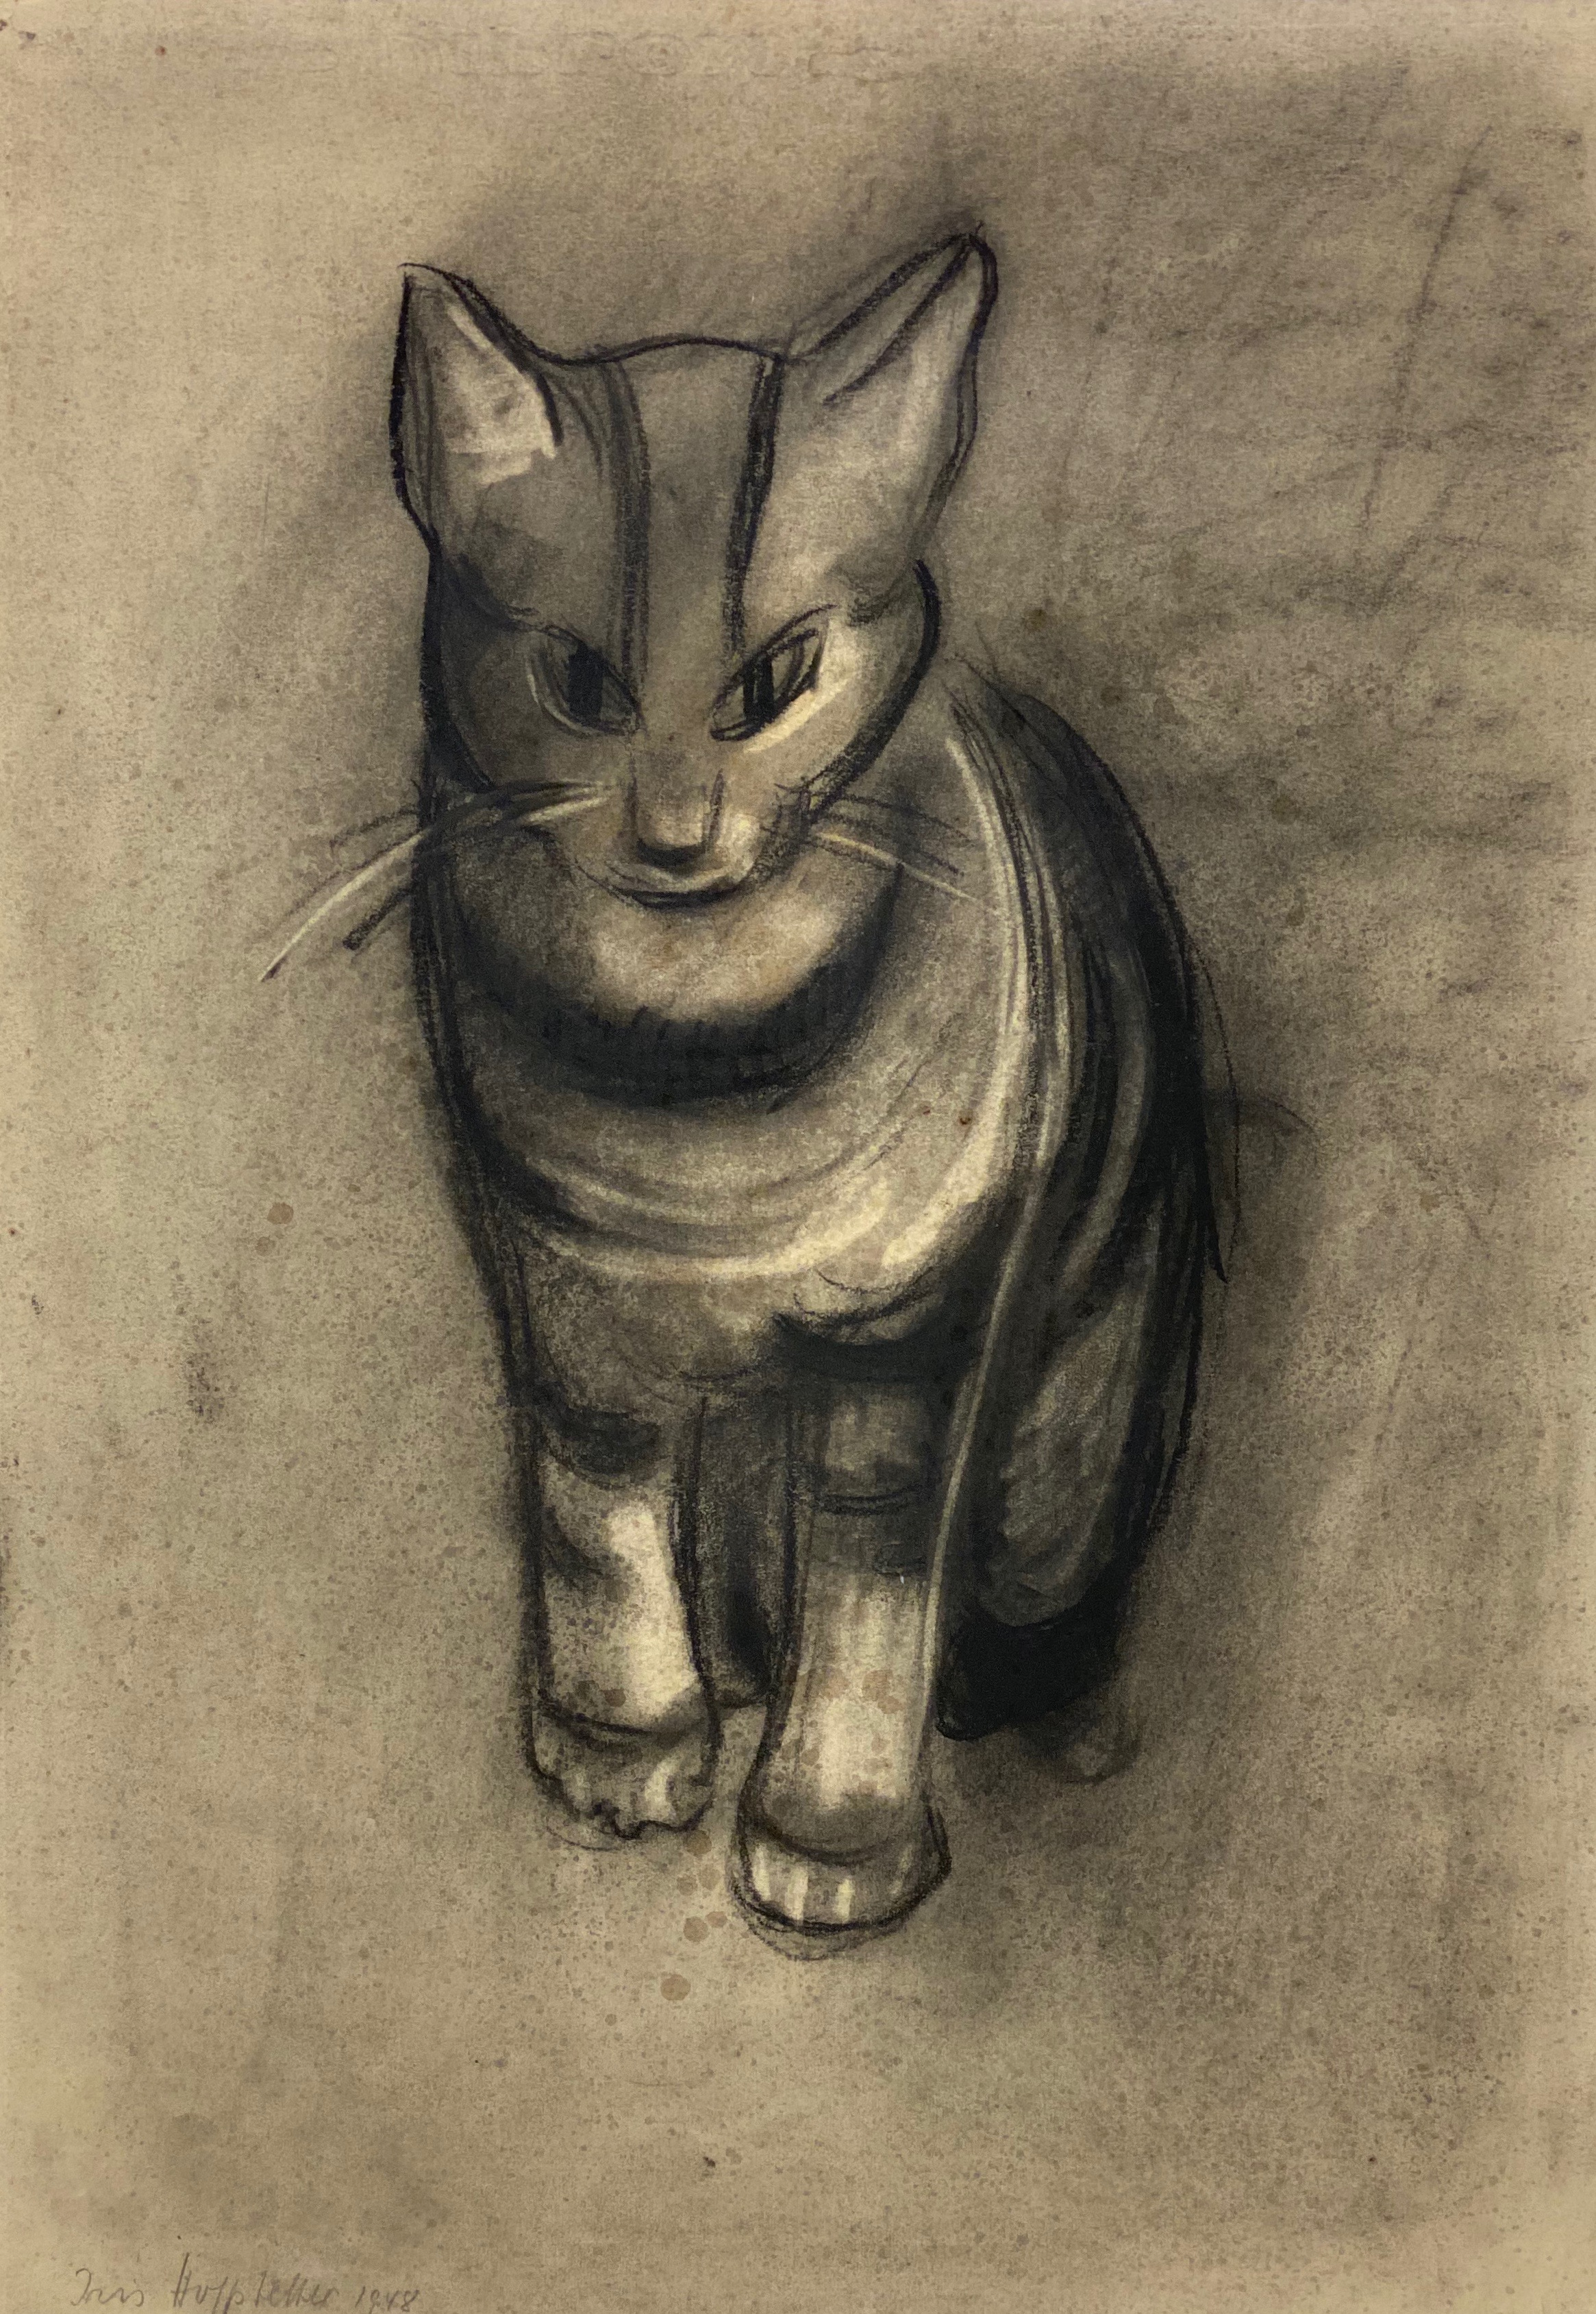 Iris Hahs-Hoffstetter | Sitting Cat | 1948 | charcoal and ink glazed | signed and dated | 43 x 30.5 cm